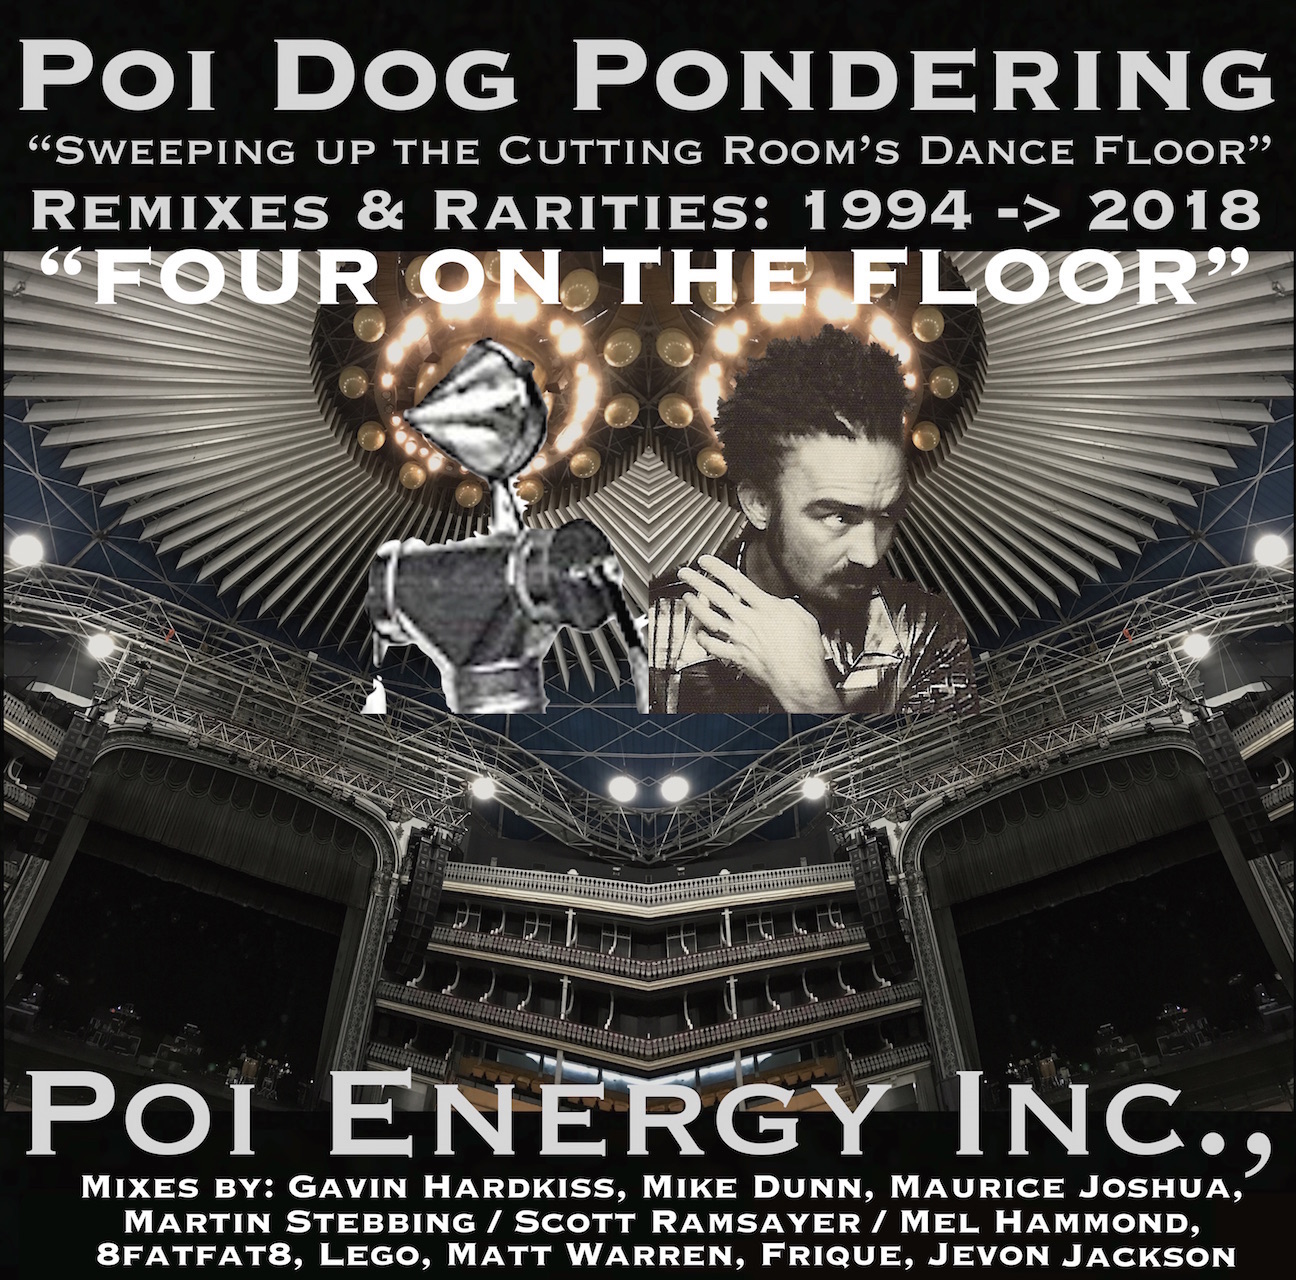 Poi Dog Pondering - Sweeping up the cuttingroom's dance floor small copy 2.jpeg